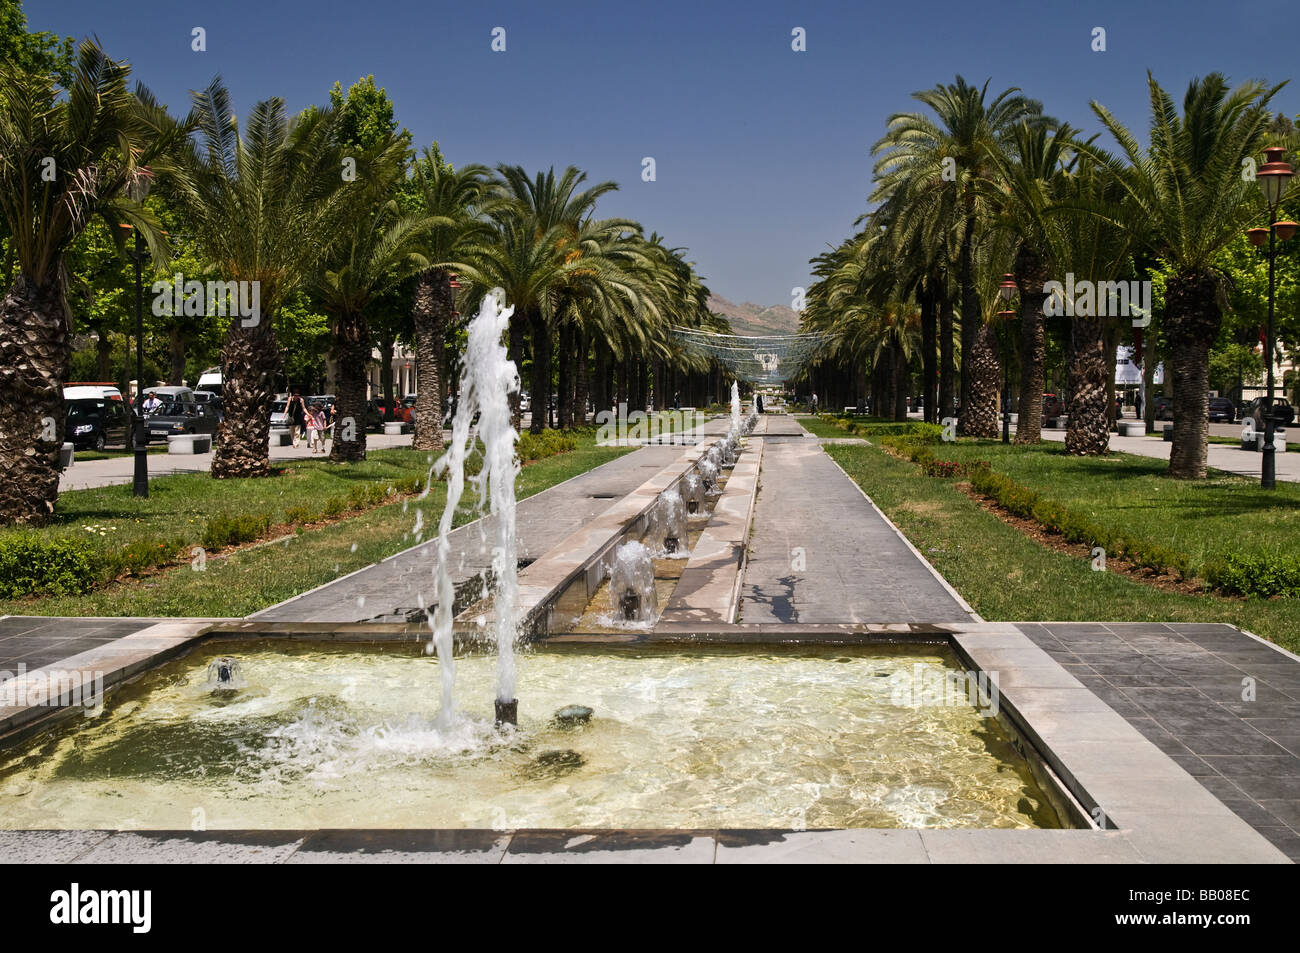 Rows of fountains and small rill in the central boulevard, Ville Nouvelle, New Town, Fes, Morocco. - Stock Image